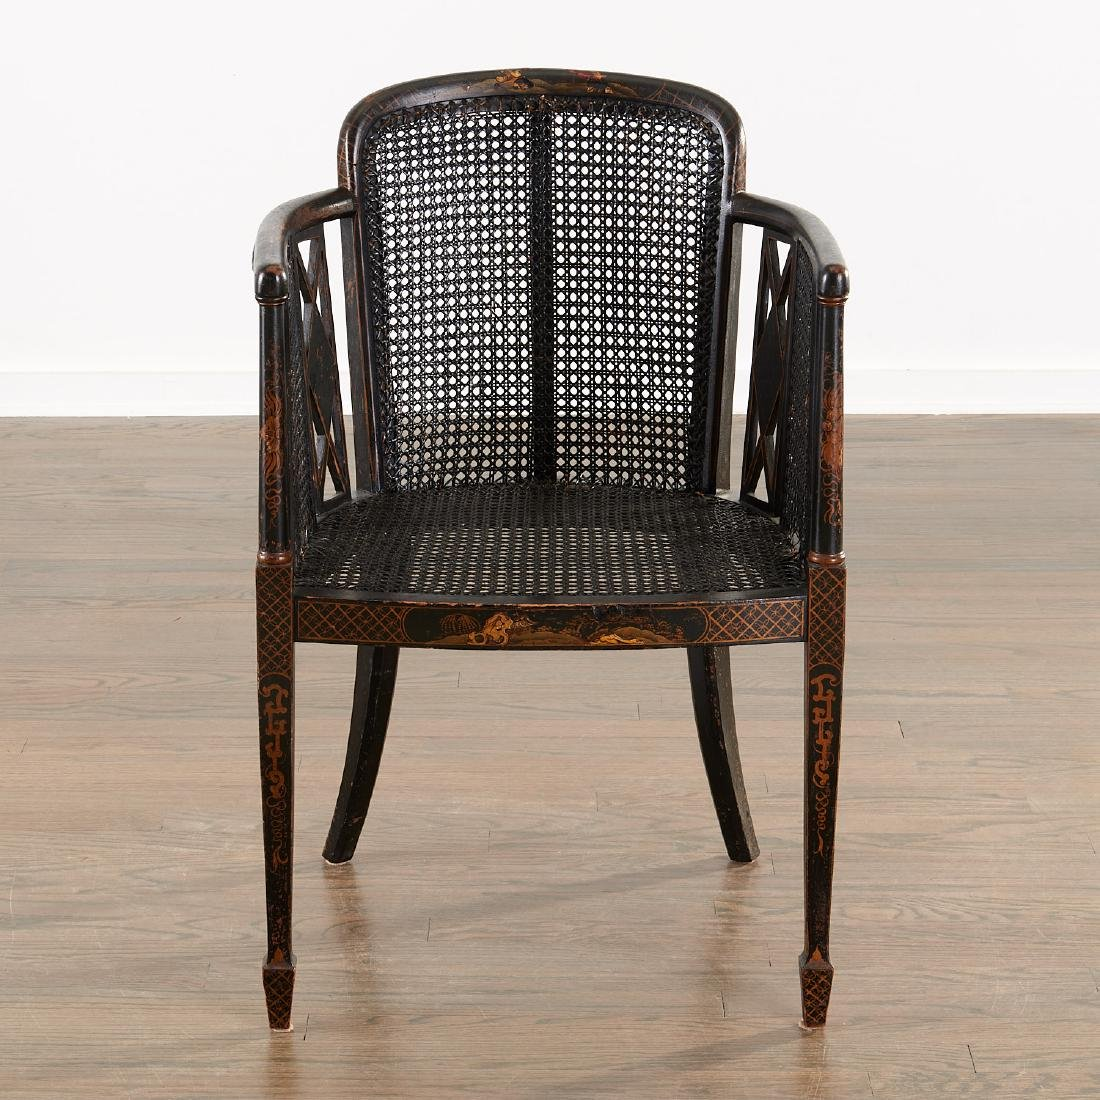 Edwardian black japanned armchair - 2